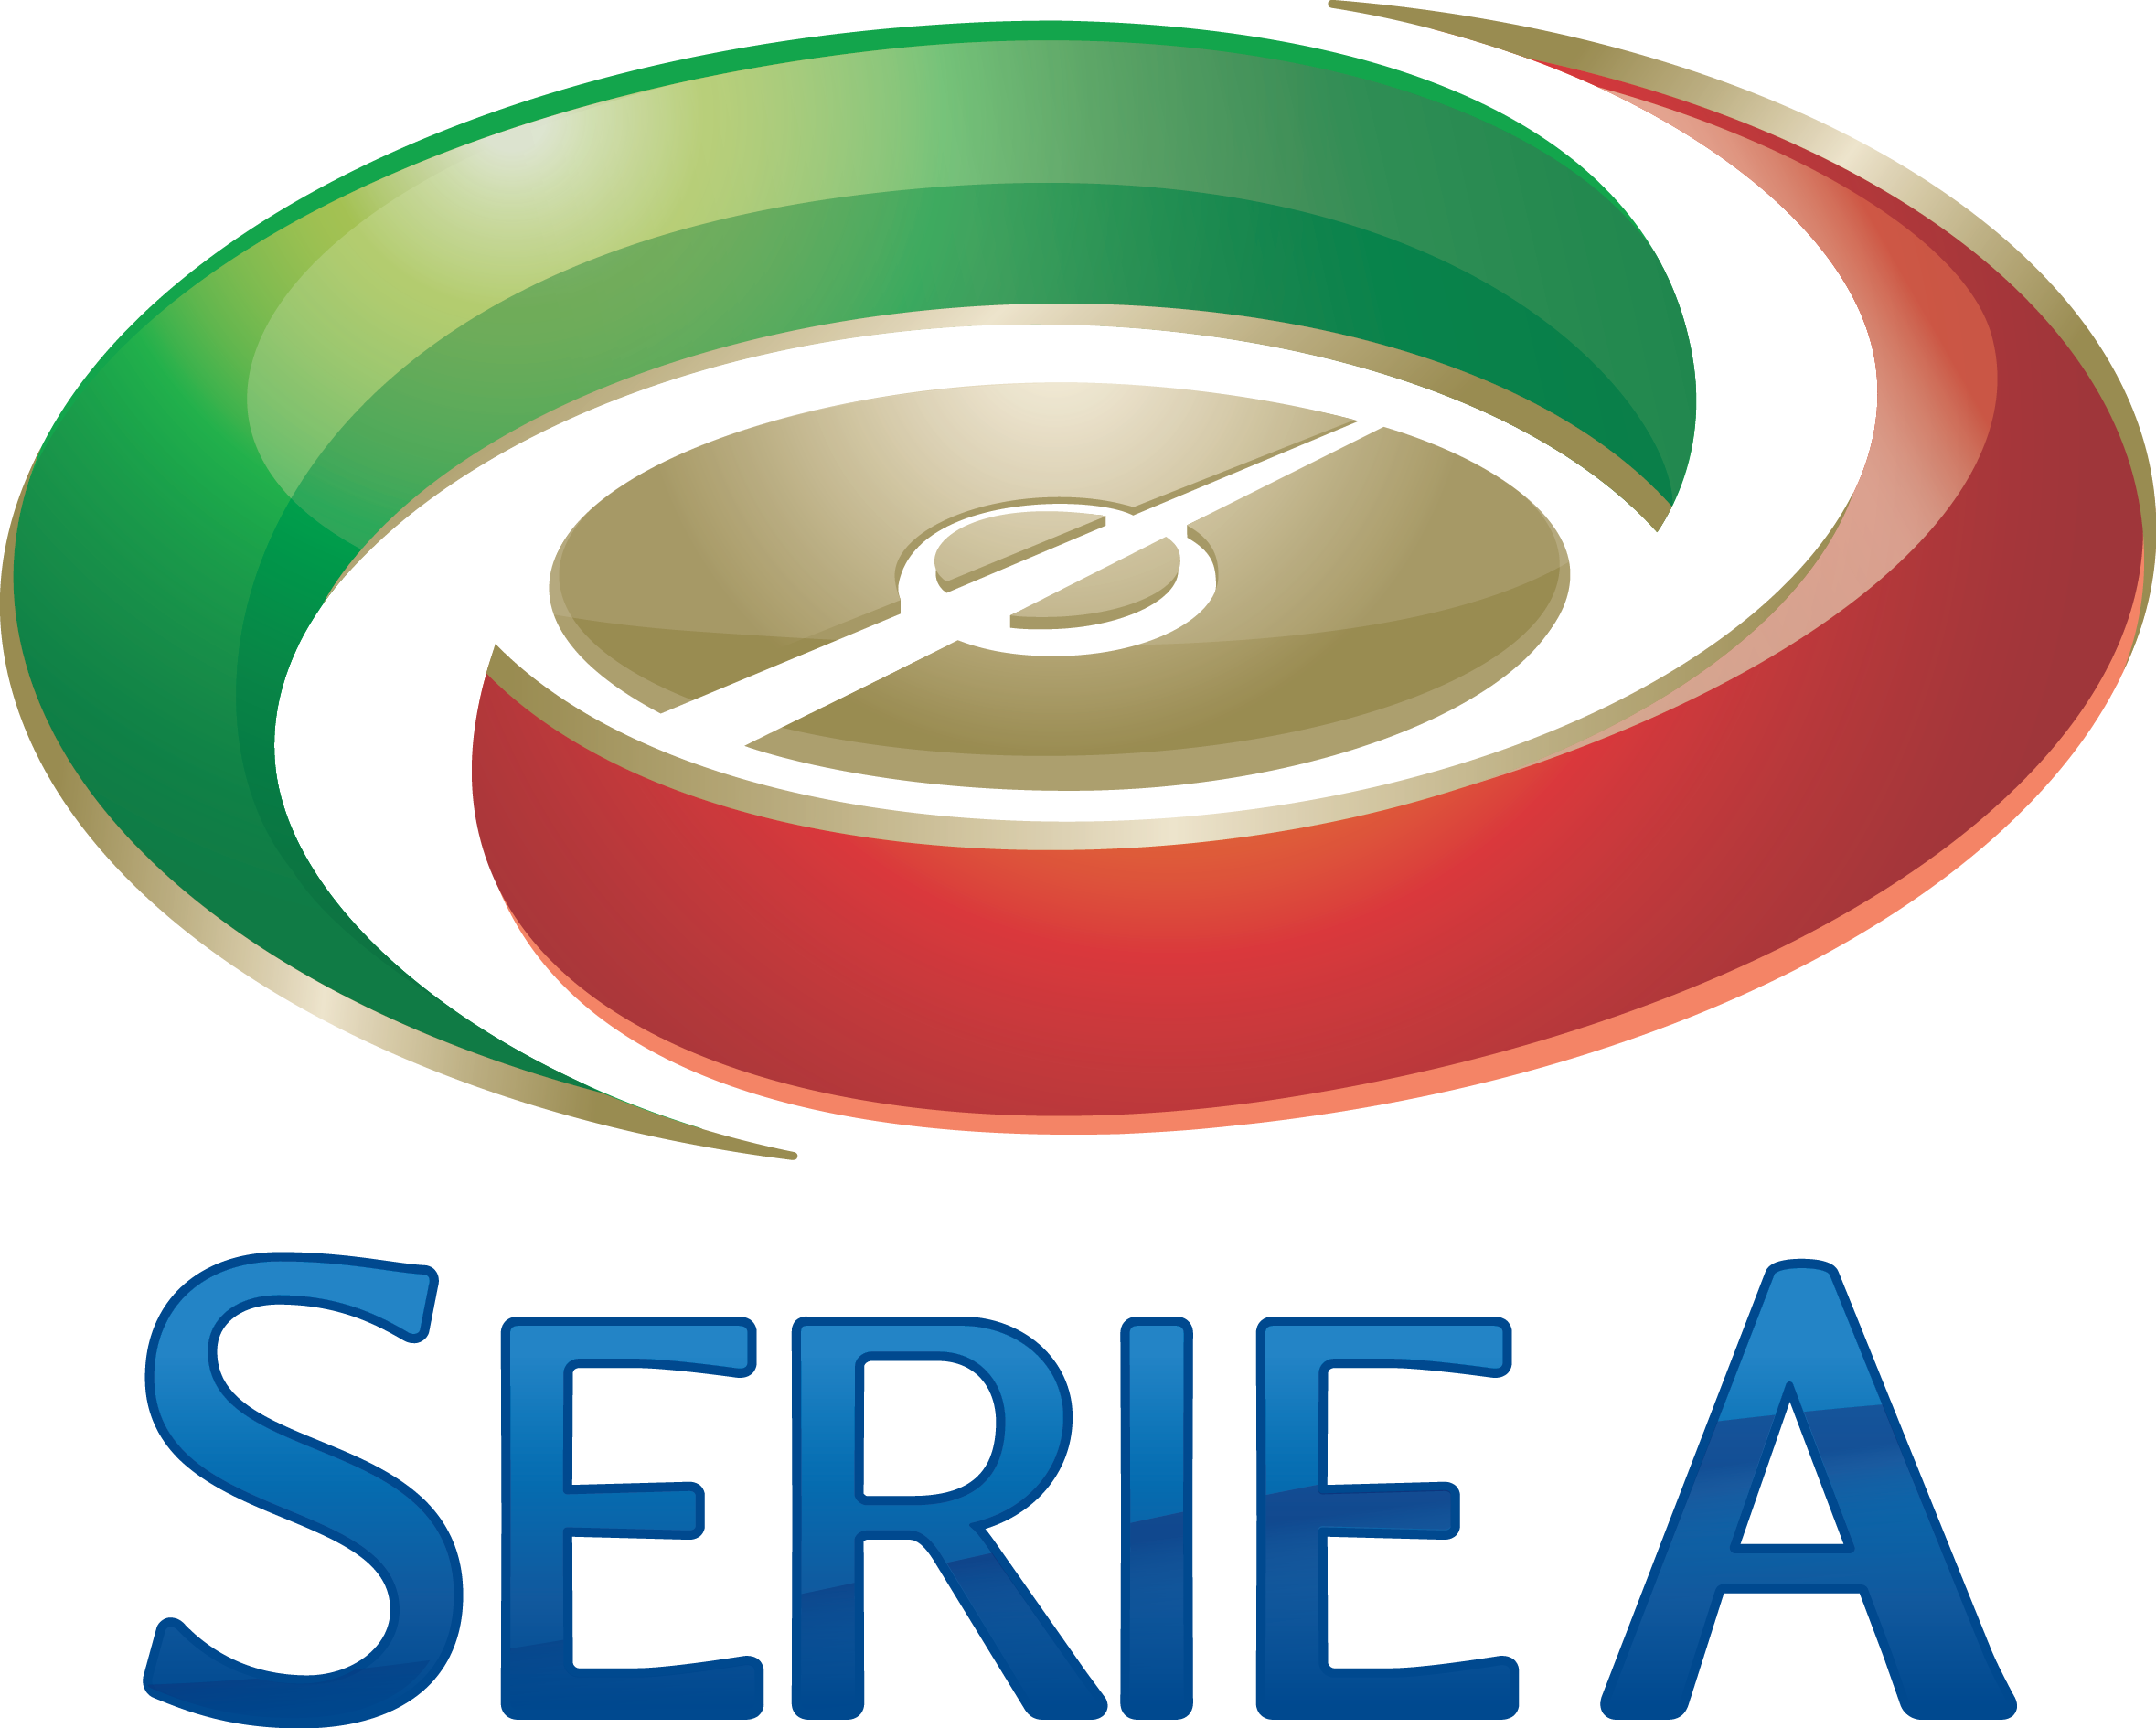 Inter Milan vs AC Milan 0-0 All goals and highlights 19/04/2015